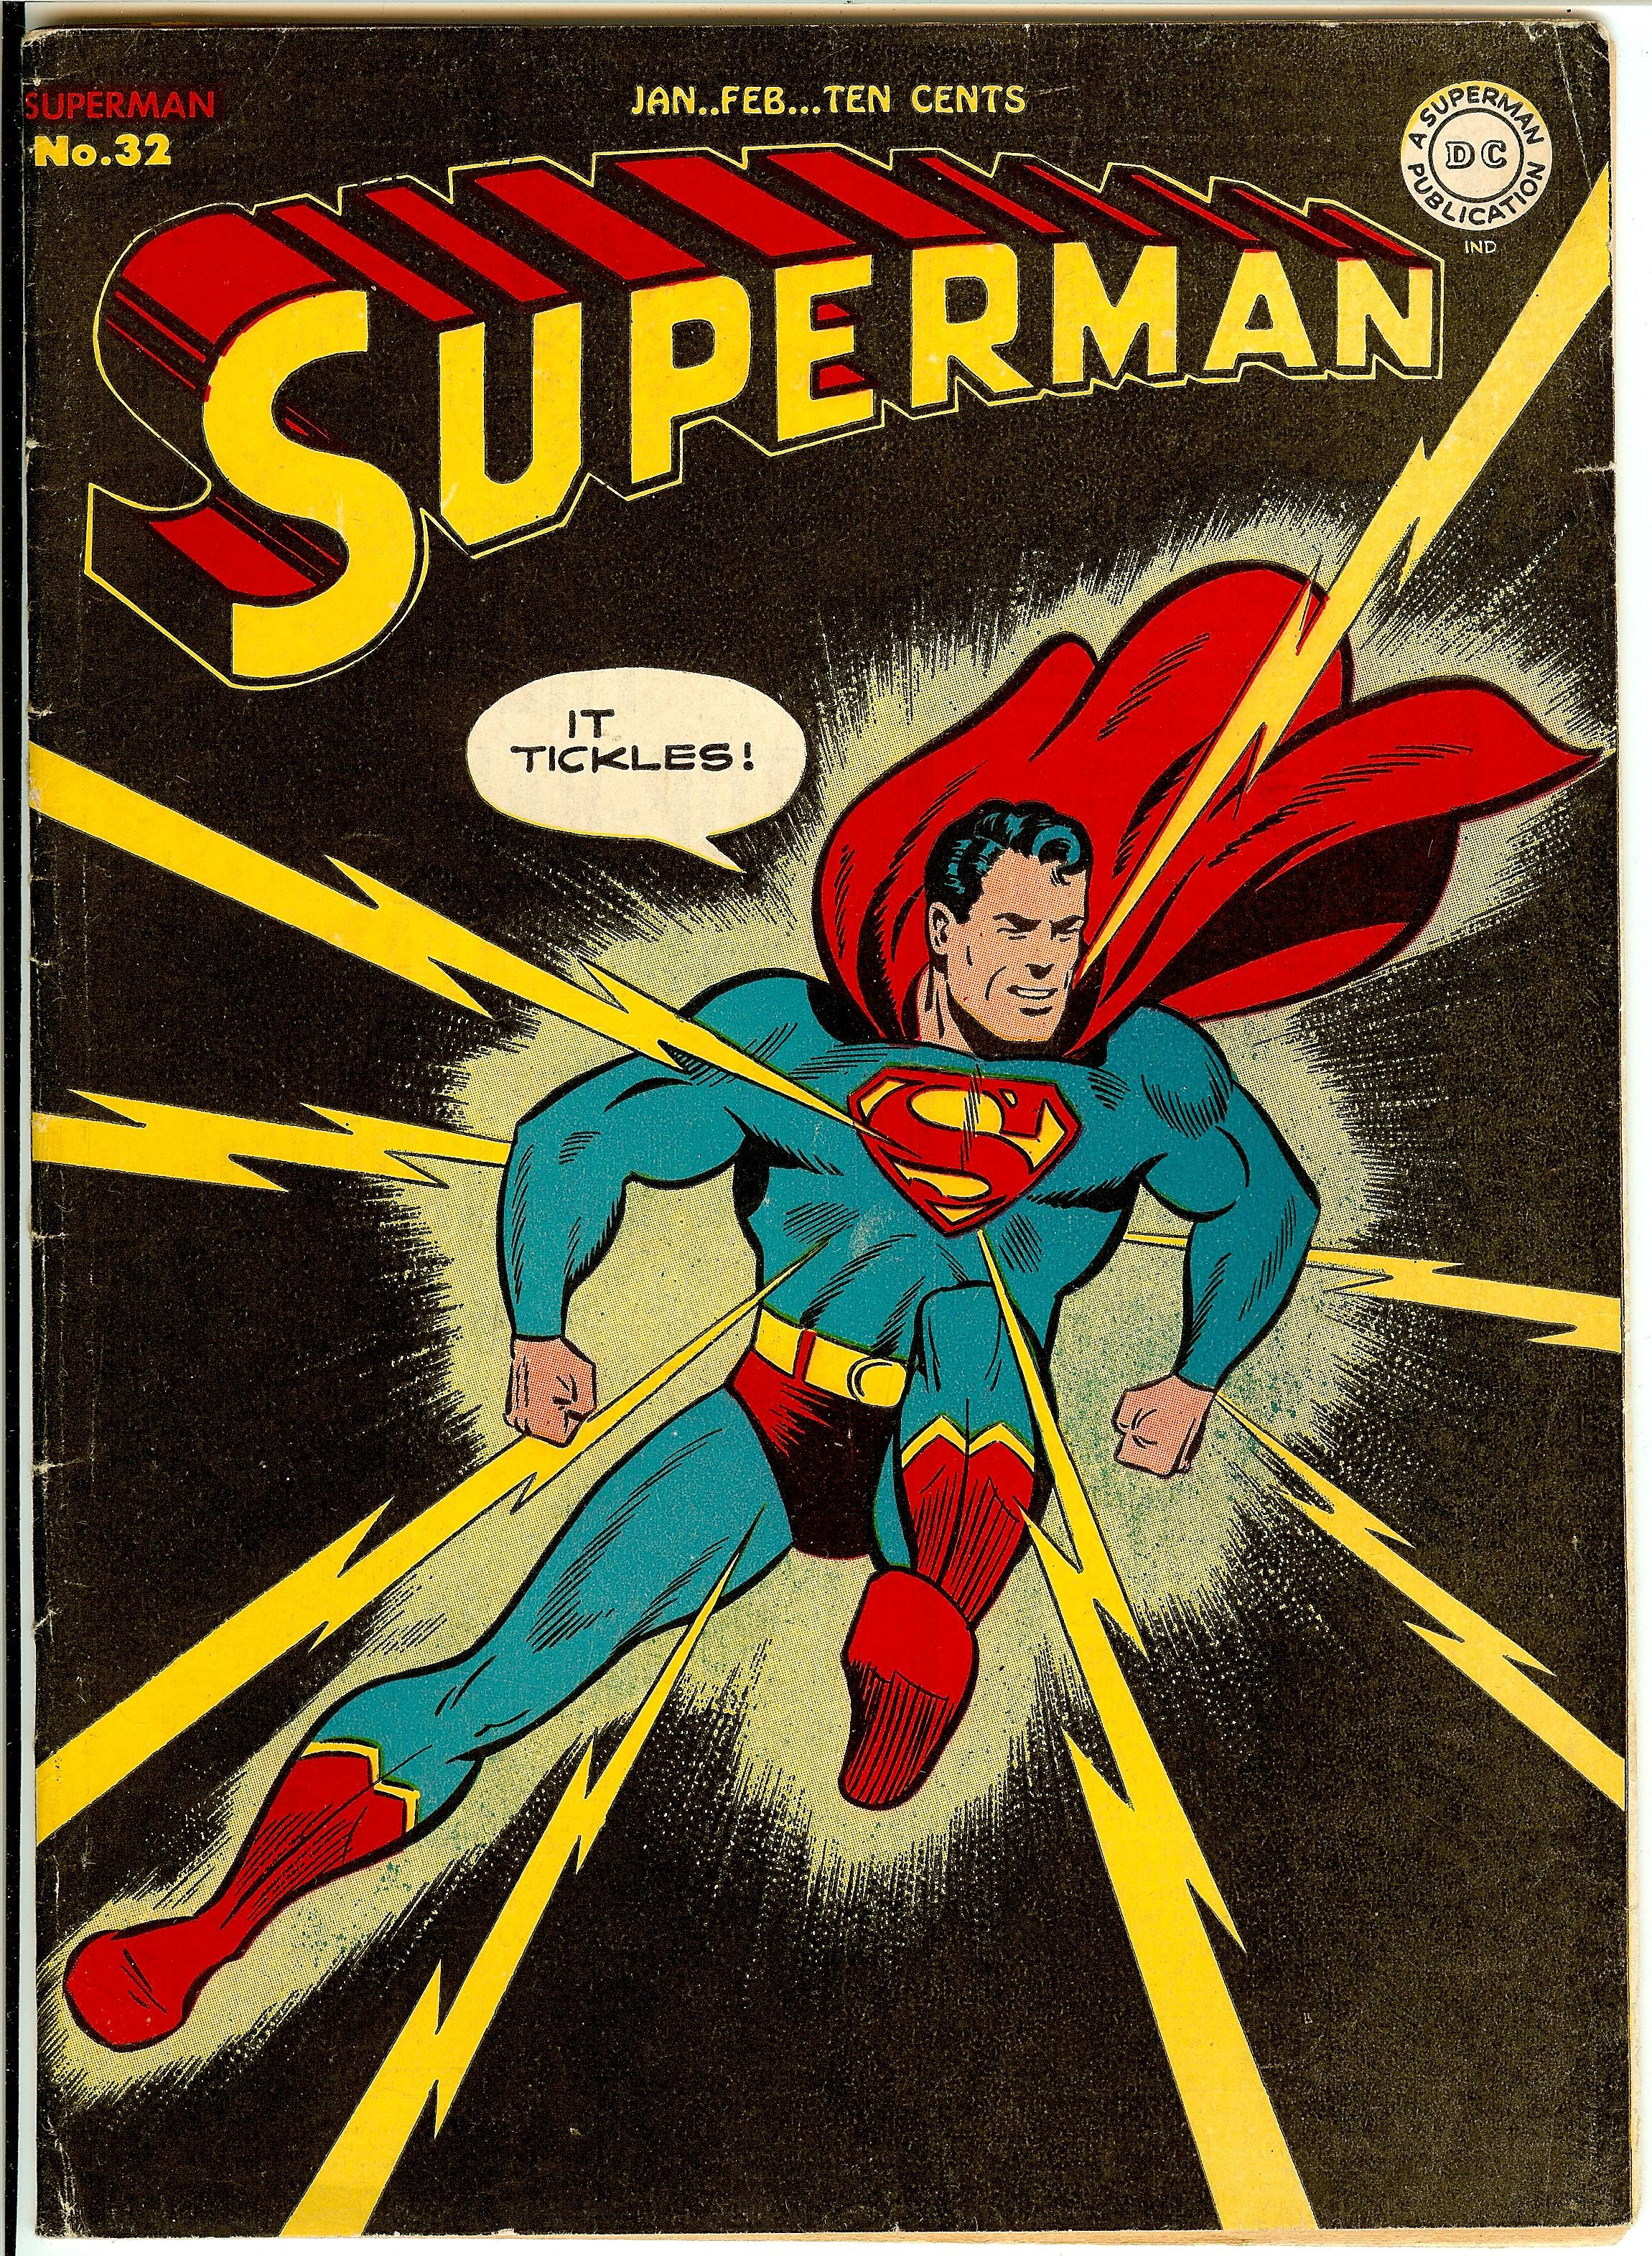 Superman Comic Book Cover Art ~ Superman man of steel dc comics vintage covers superheroes